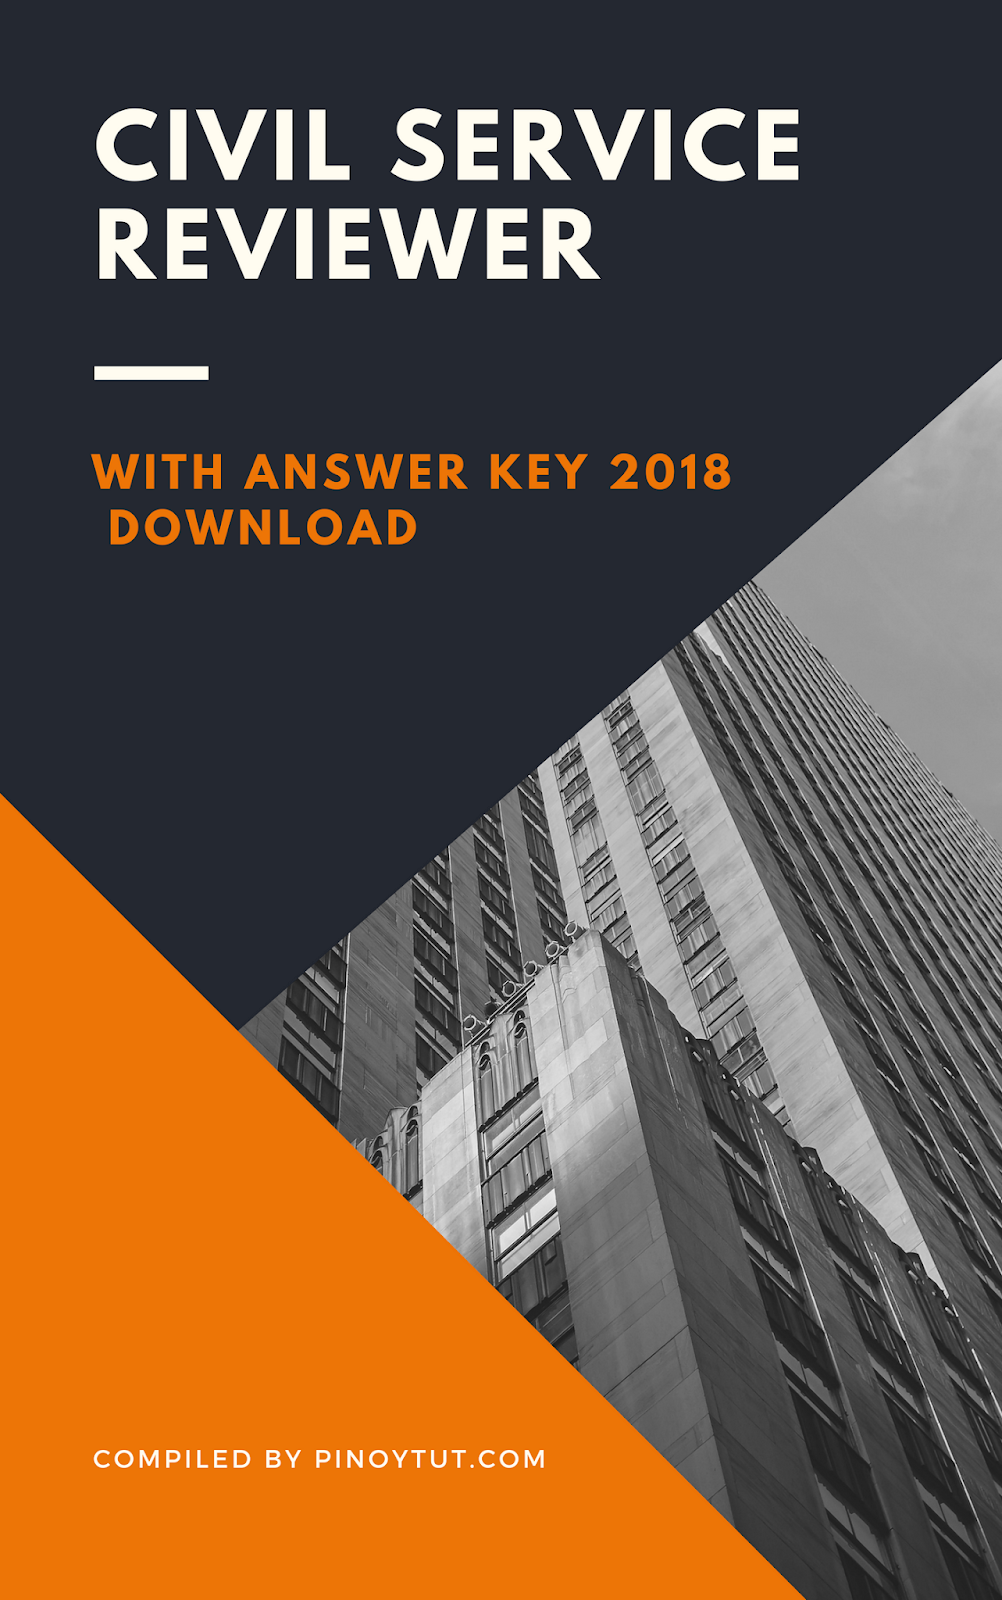 Civil Service Reviewer With Answer Key 2018 Download Png 1002 1600 Civil Service Reviewer Civil Engineering Design Civil Service Exam